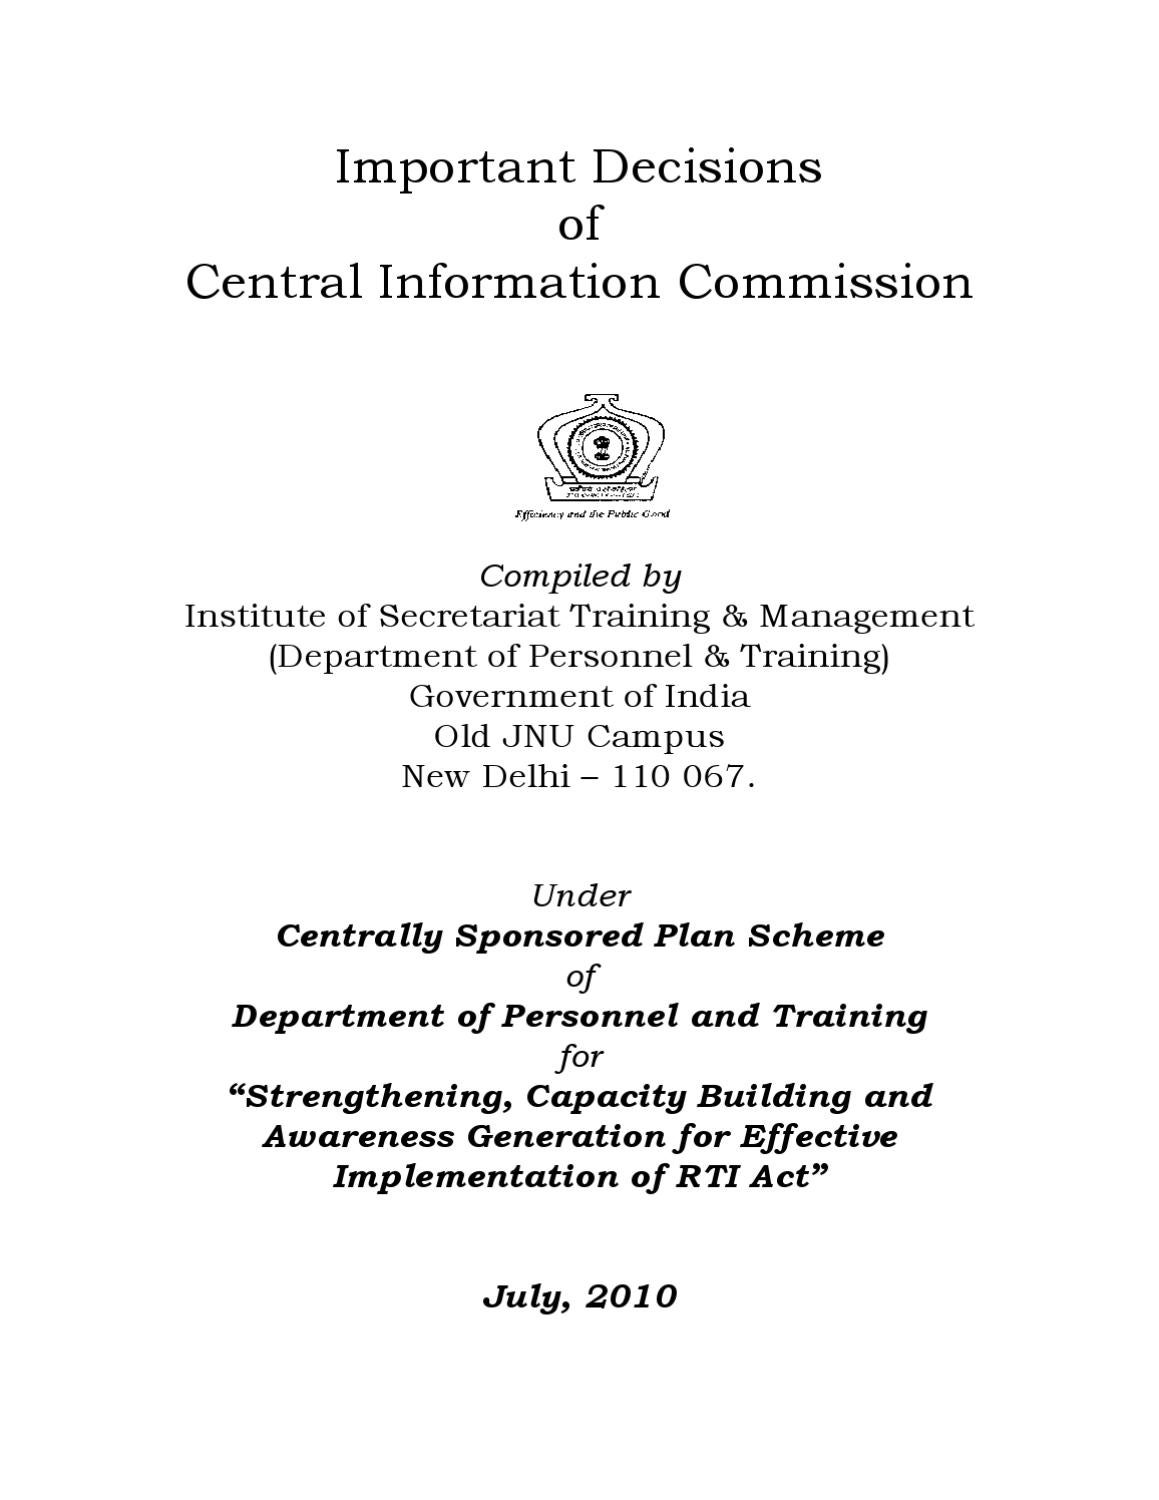 Important DecisionsofCentral Information Commission by